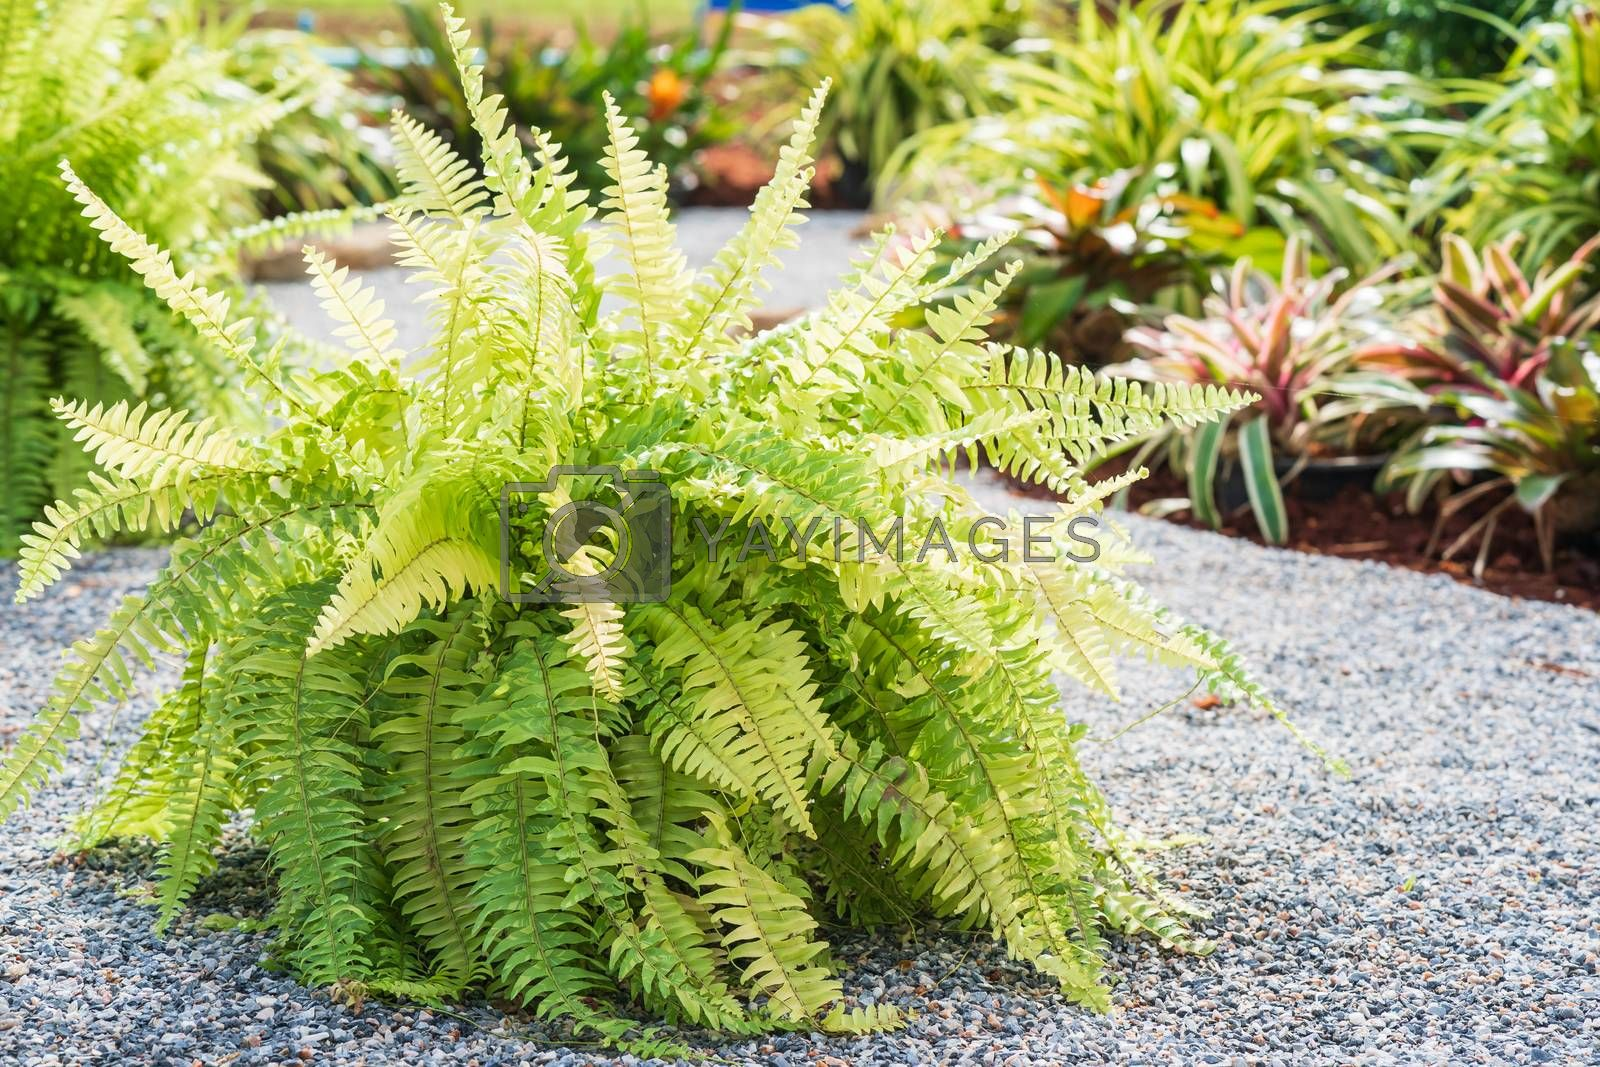 Fern plant on the pebble ground in garden